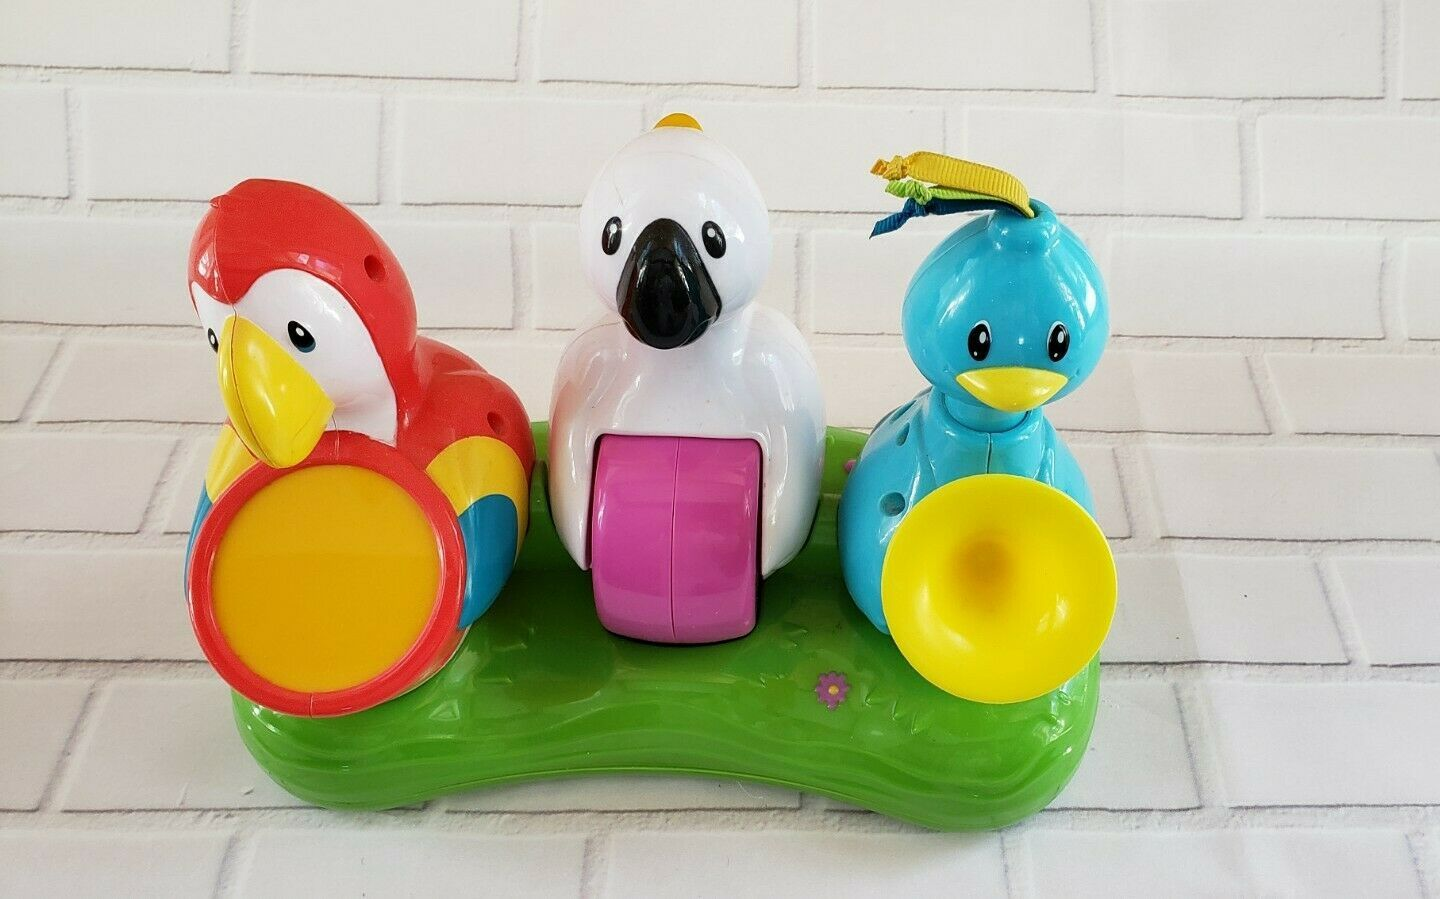 EVENFLO Life in the Amazon Exersaucer Jungle Bird Band Replacement Parts - $17.29